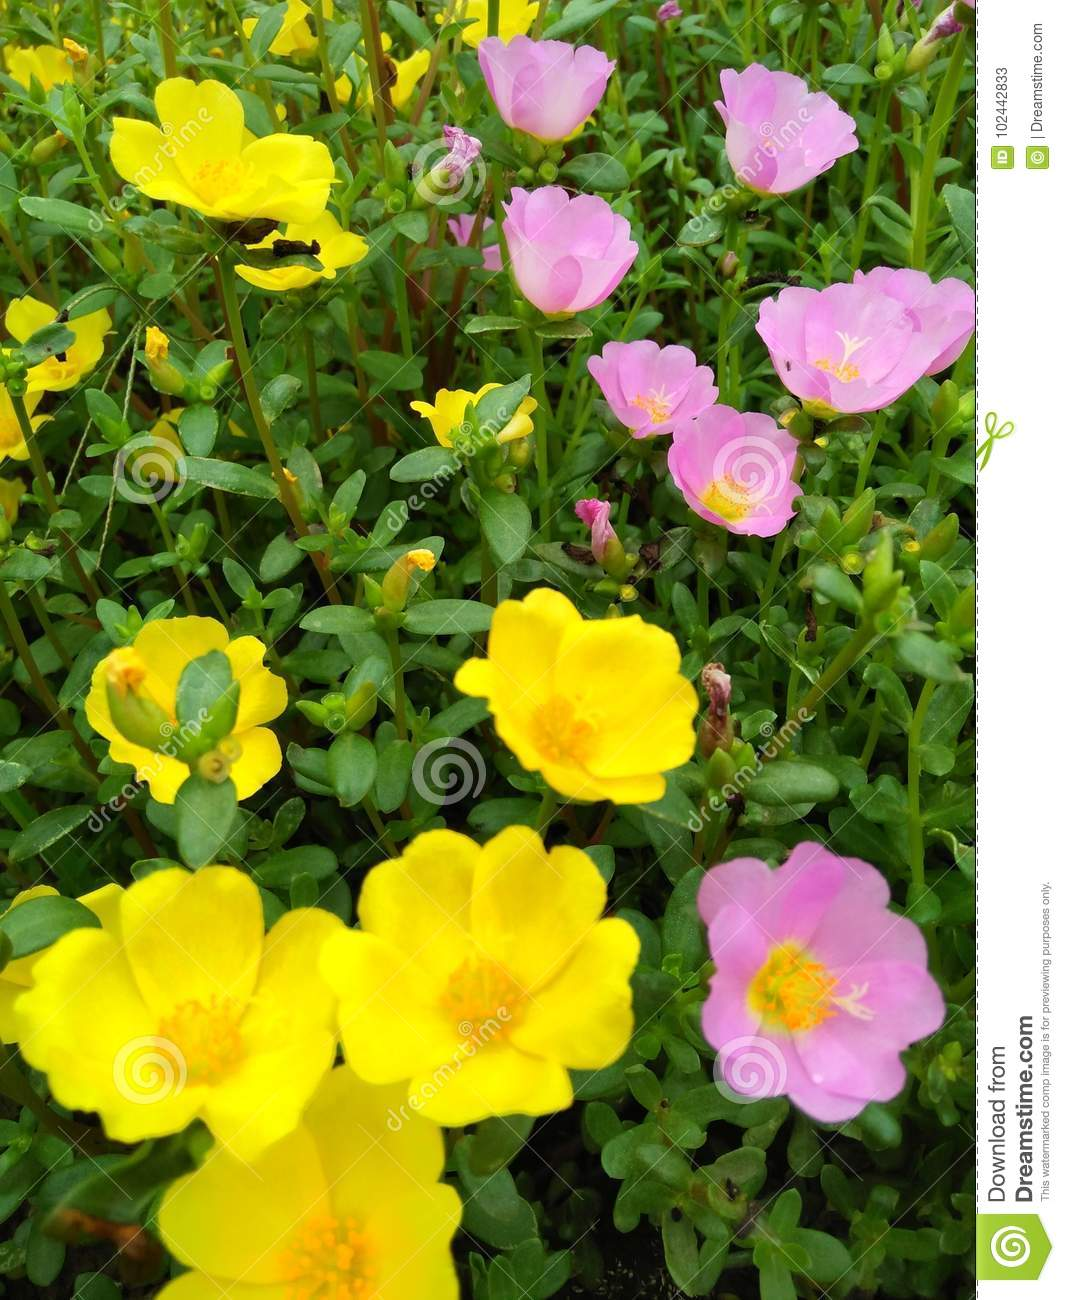 Flower Pink Stock Image Image Of Flowers Blooming 102442833